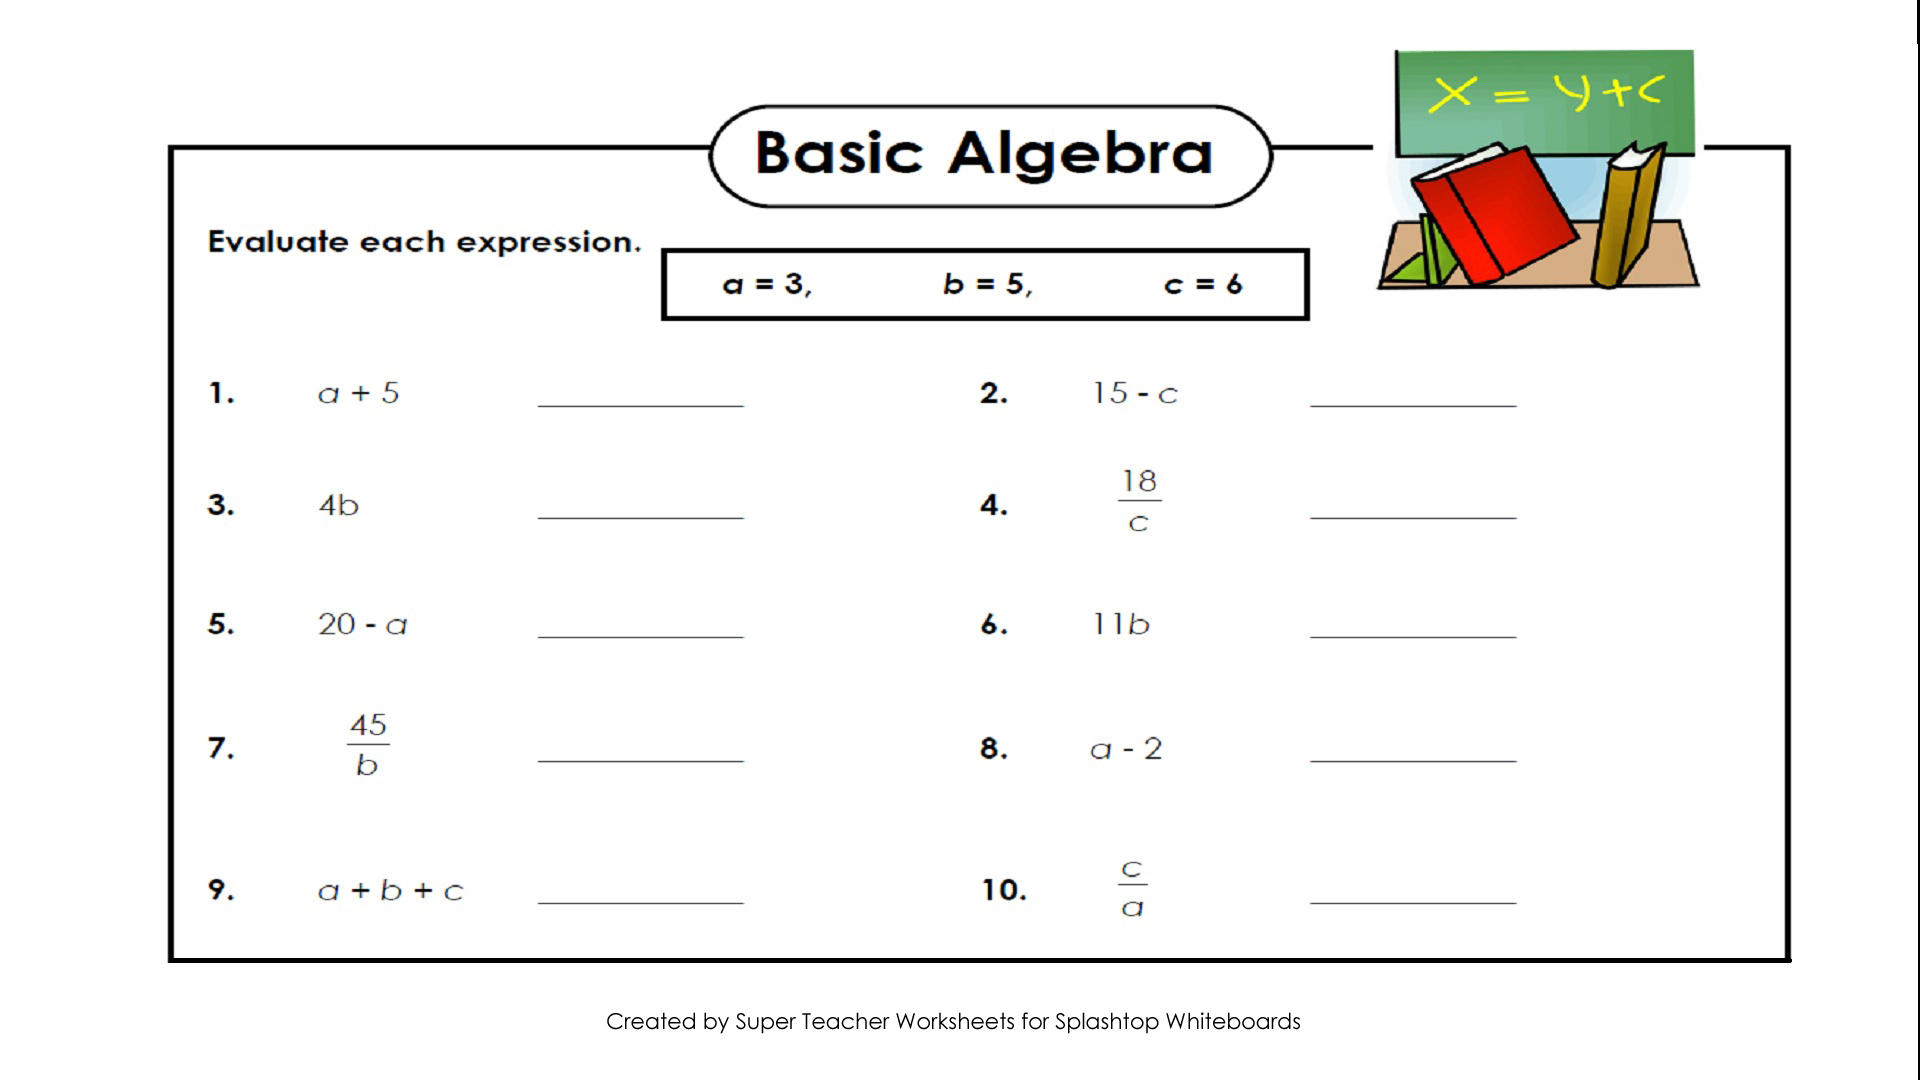 Worksheets Super Teacher Math Worksheets splashtop whiteboard background graphics algebra basic